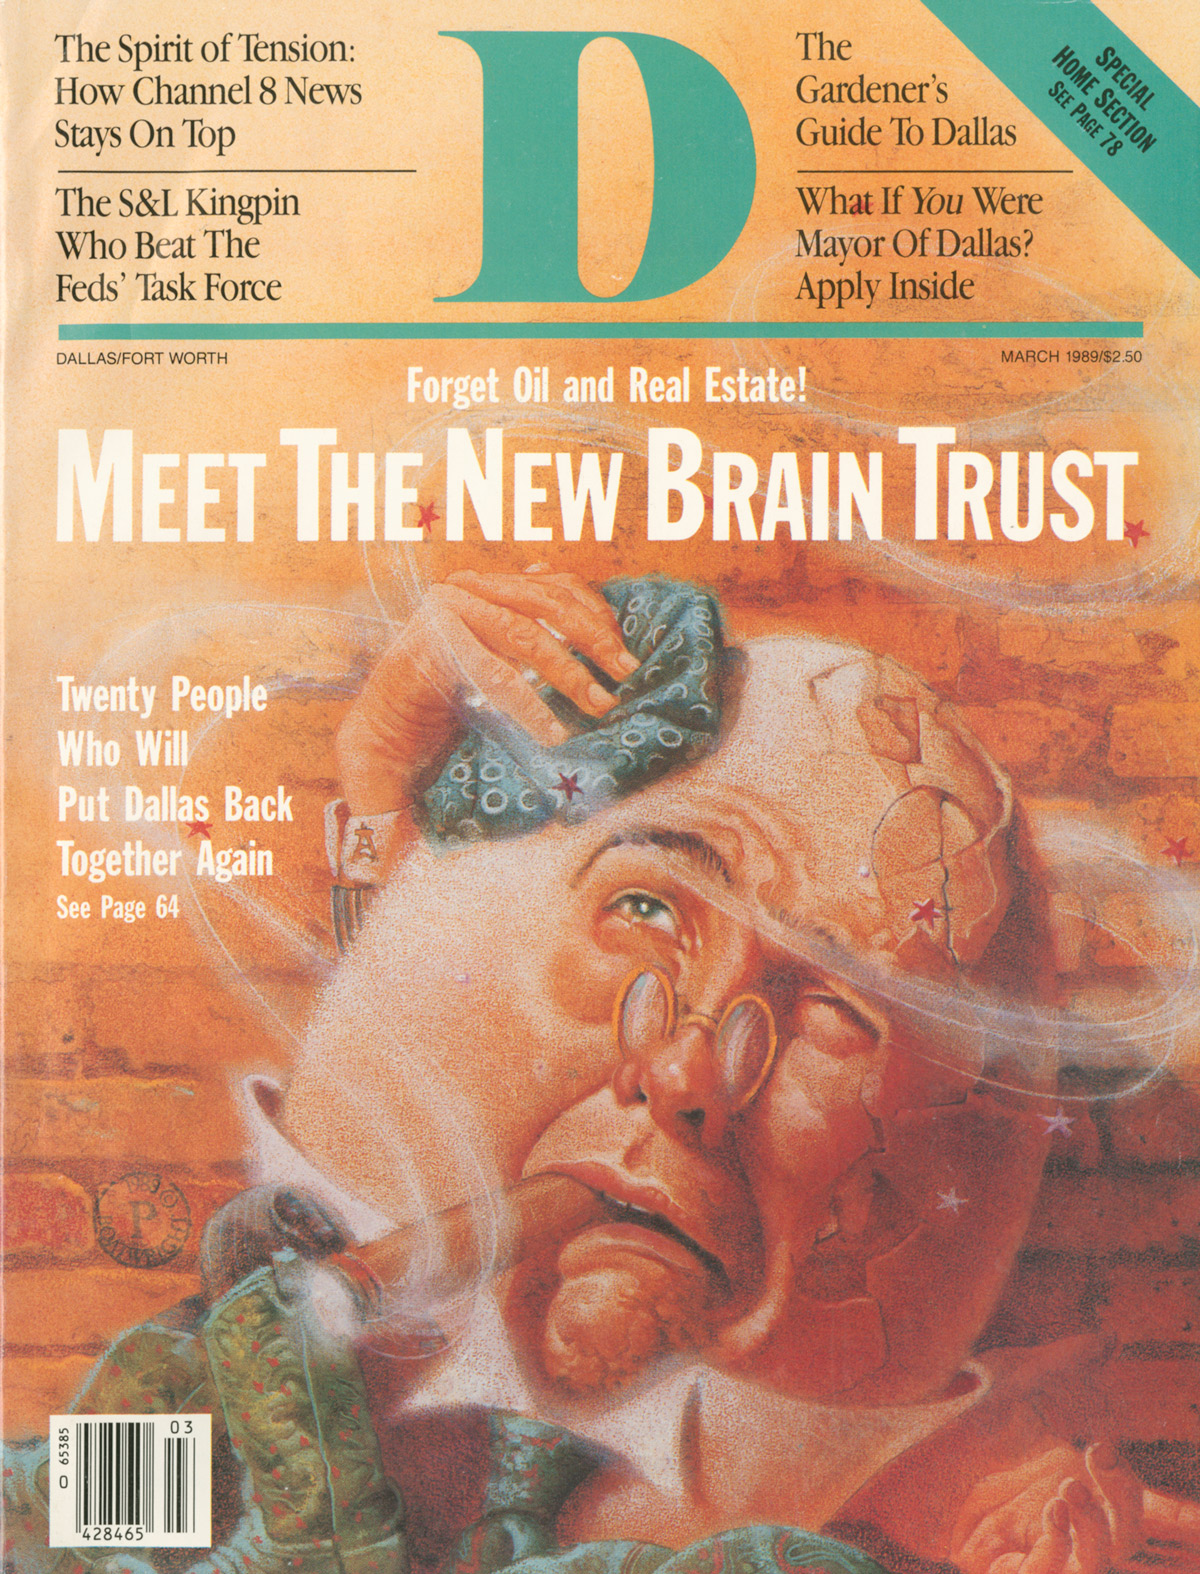 March 1989 cover